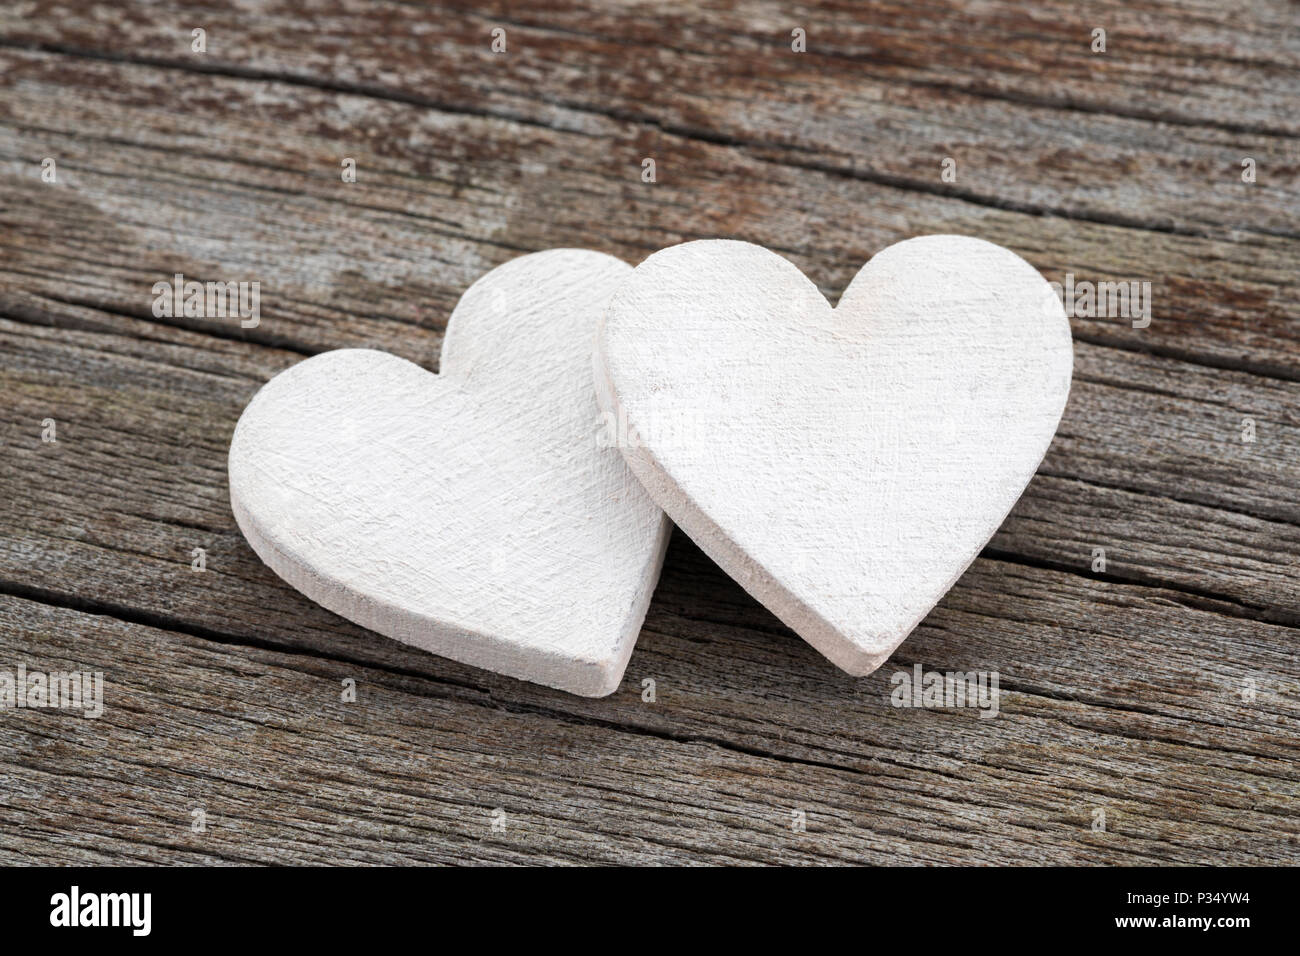 Two hearts on old wooden background - Stock Image